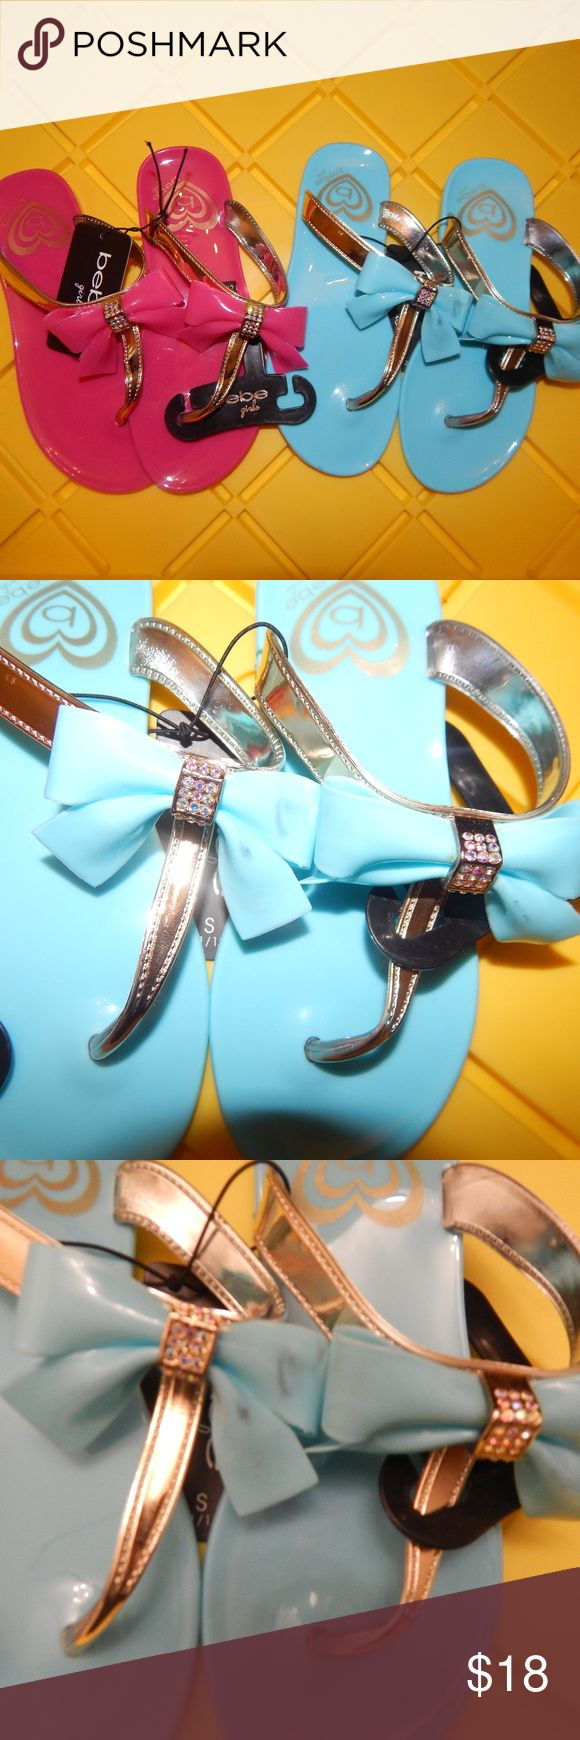 NWT Bebe Girl's Rhinestone & Bow Flip Flop Bundle Great summer time shoe for little girls Size: S 11/12. 2 PAIR for the price of one. Plastic but sturdy. Thong slip on flip flop with a bow with rhinestones. Perfect for those warm day's. No Trades just great bargain's. Firm price, fast shipping and a free gift with every order. Bebe Girls Shoes Sandals & Flip Flops